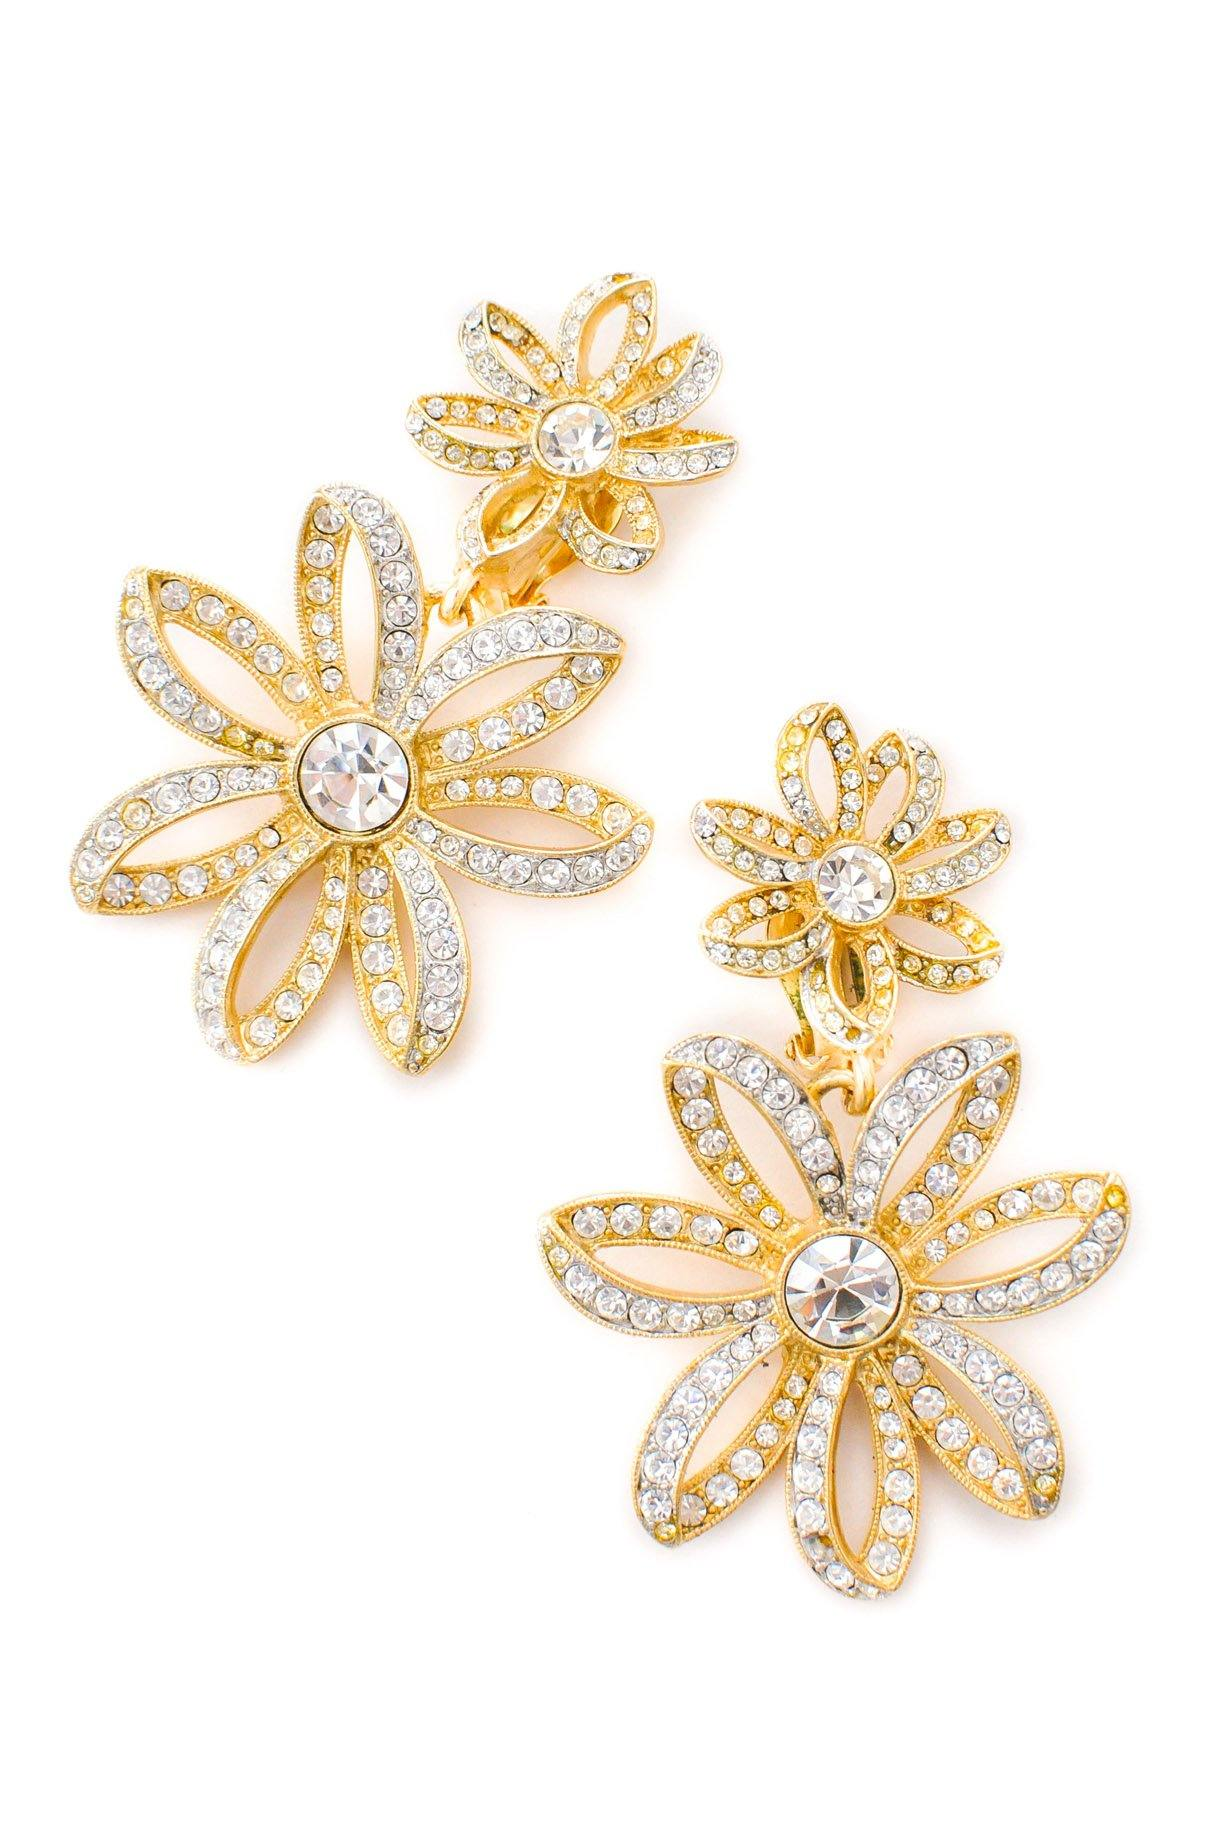 Givenchy Rhinestone Floral Clip-on Earrings